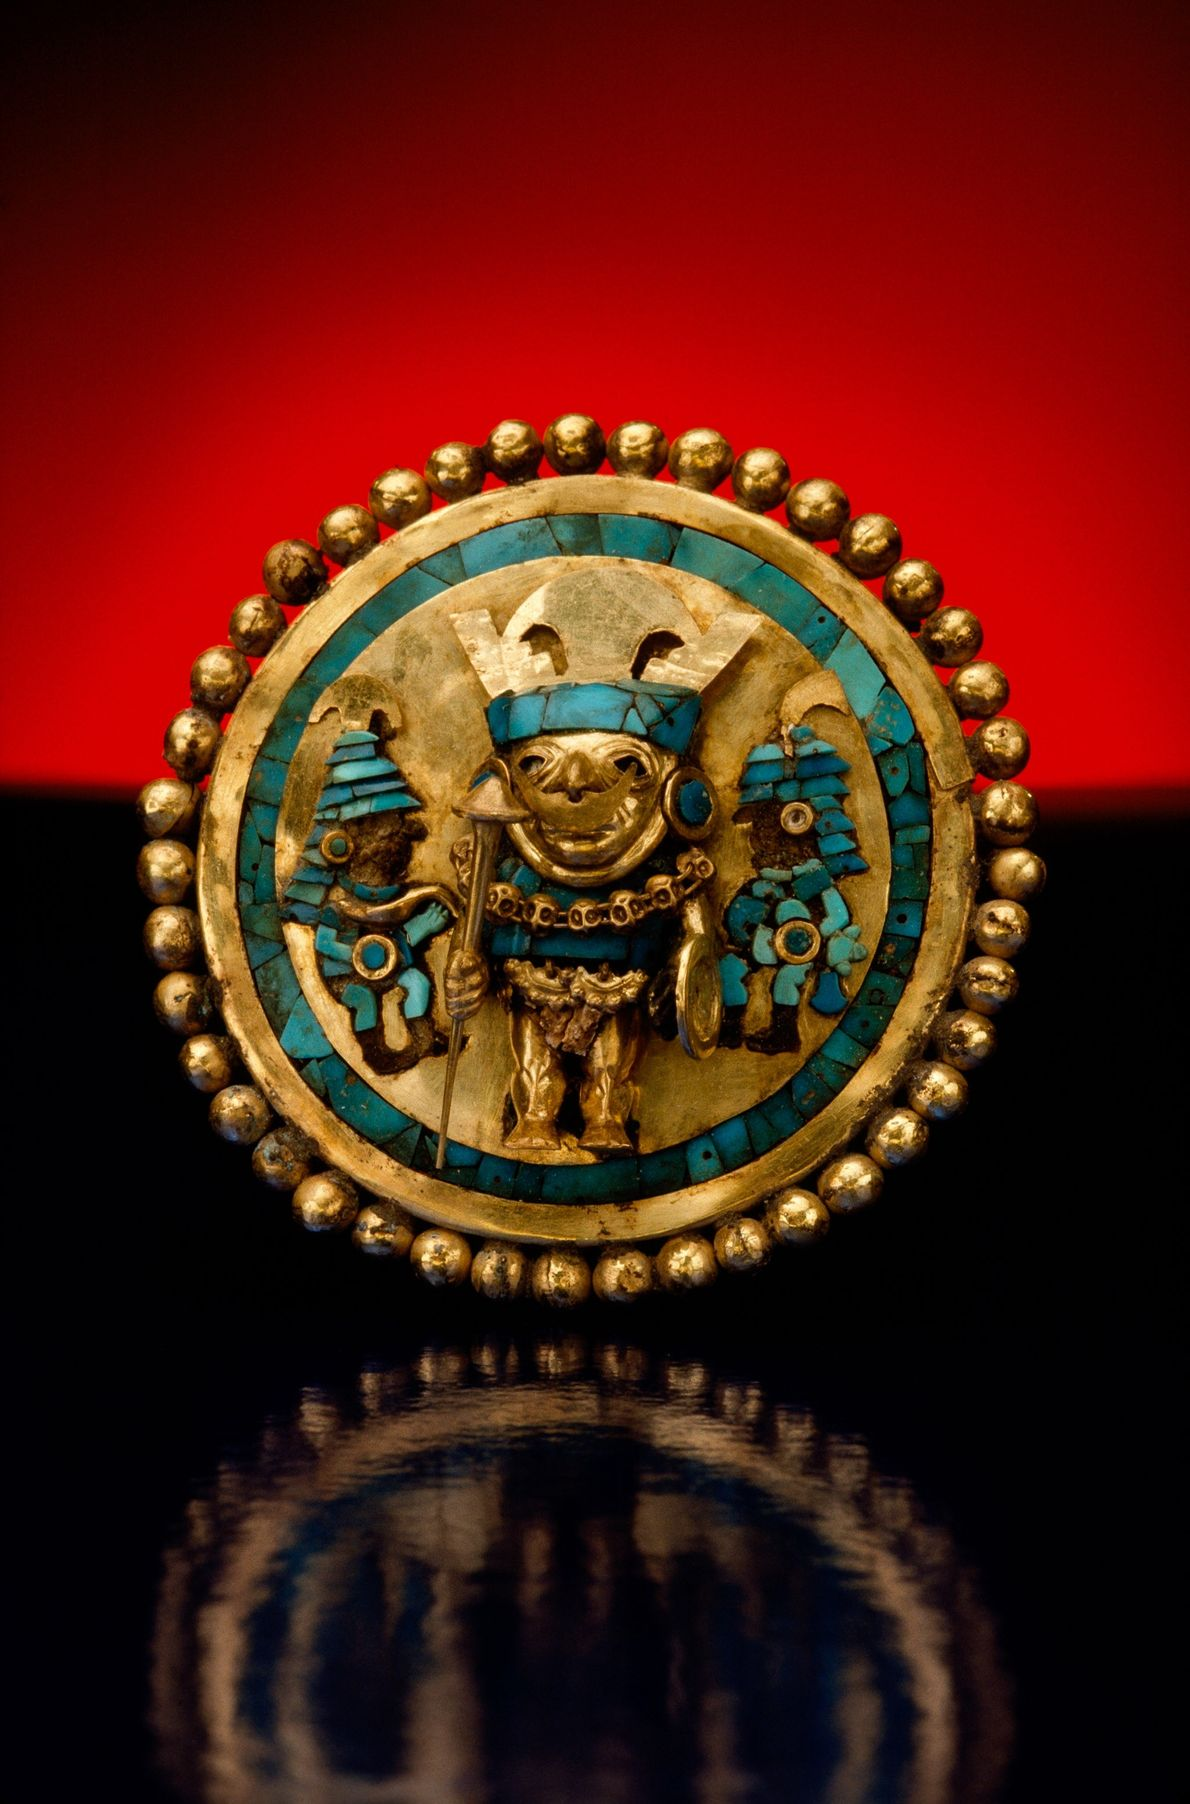 This Moche ornament was discovered in a tomb near Sipan. Chiclayo, Peru.